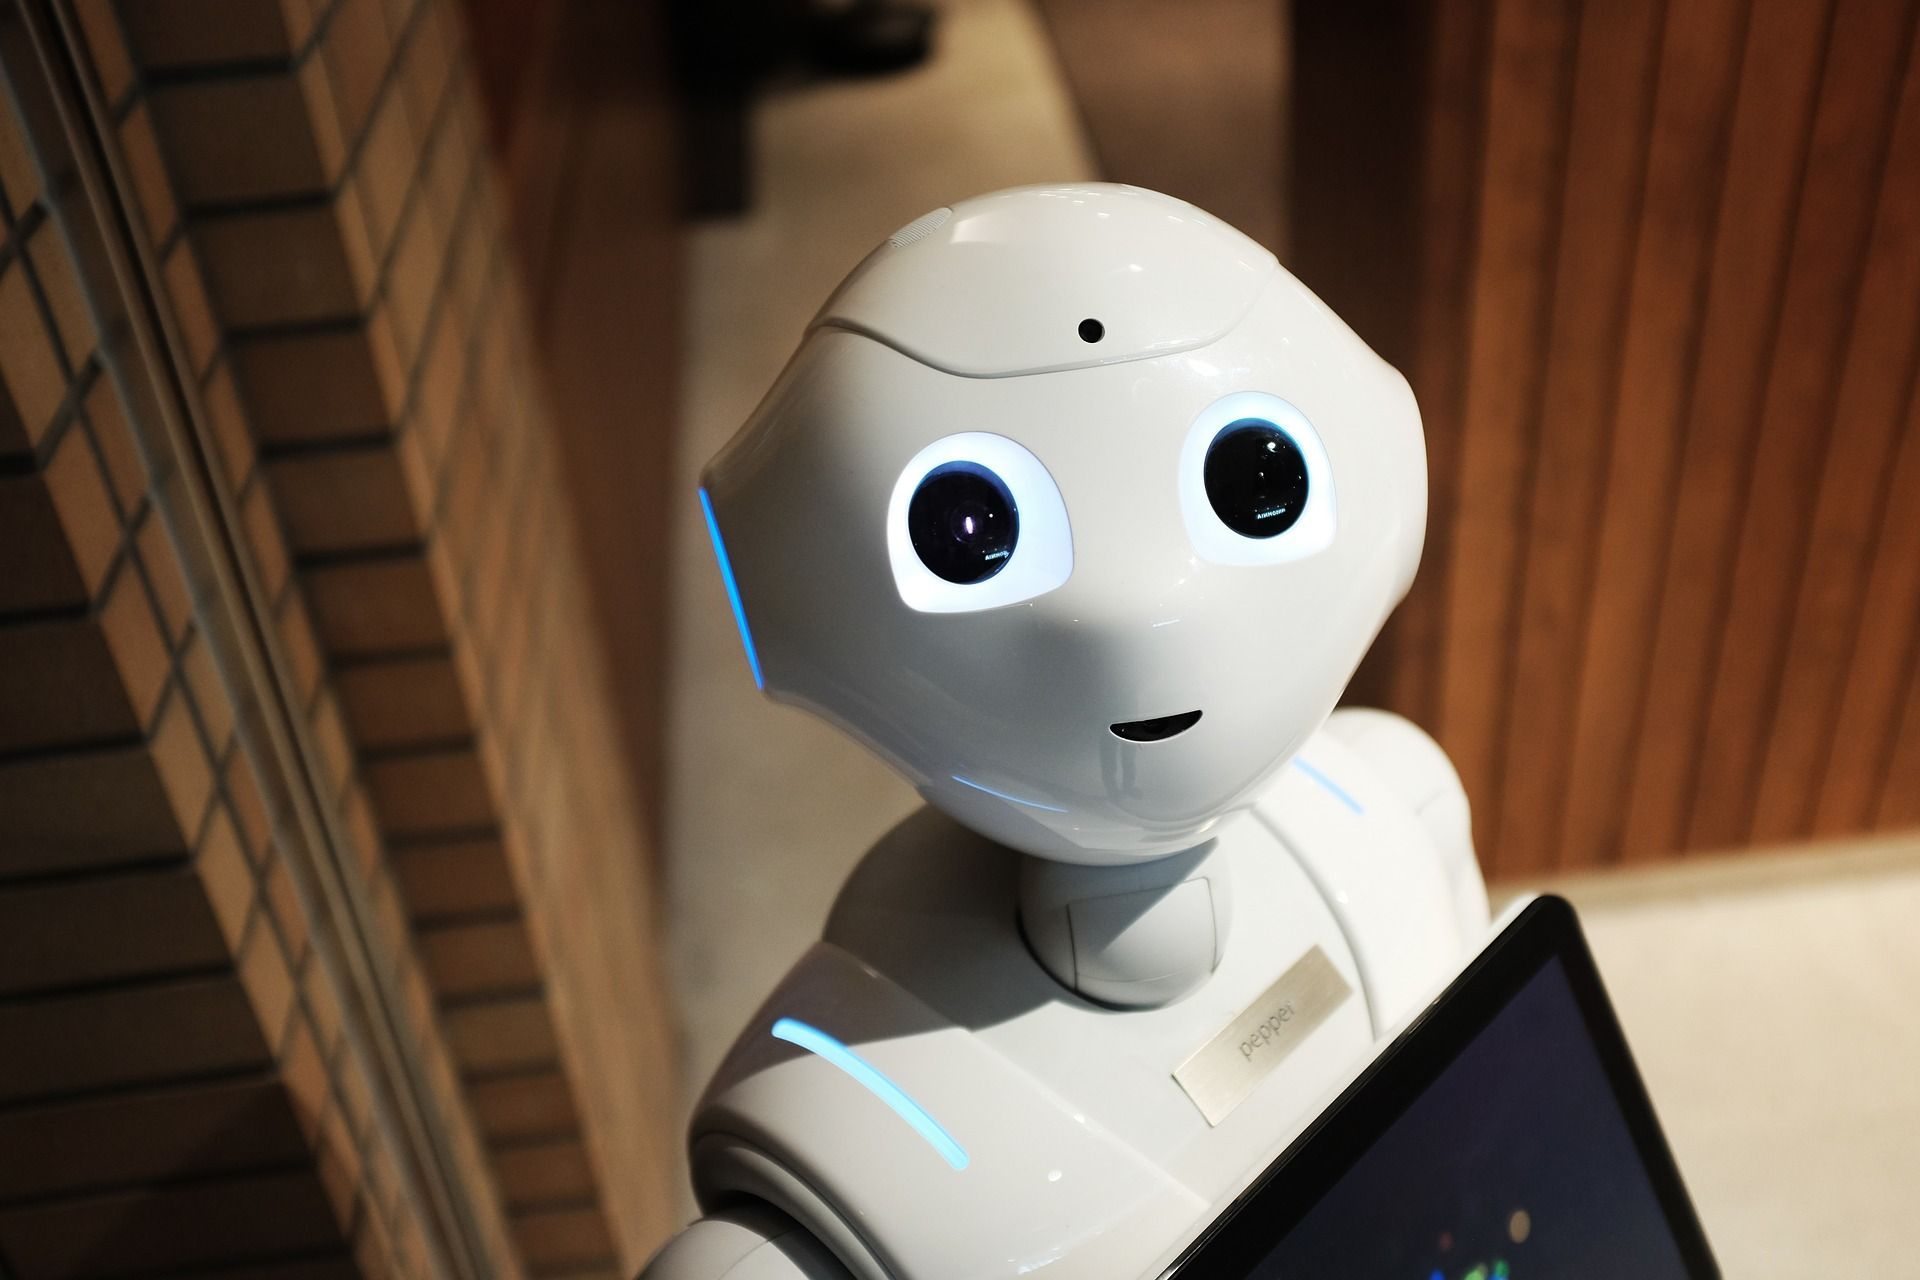 A picture of Pepper, a robot powered by AI and ML technology.